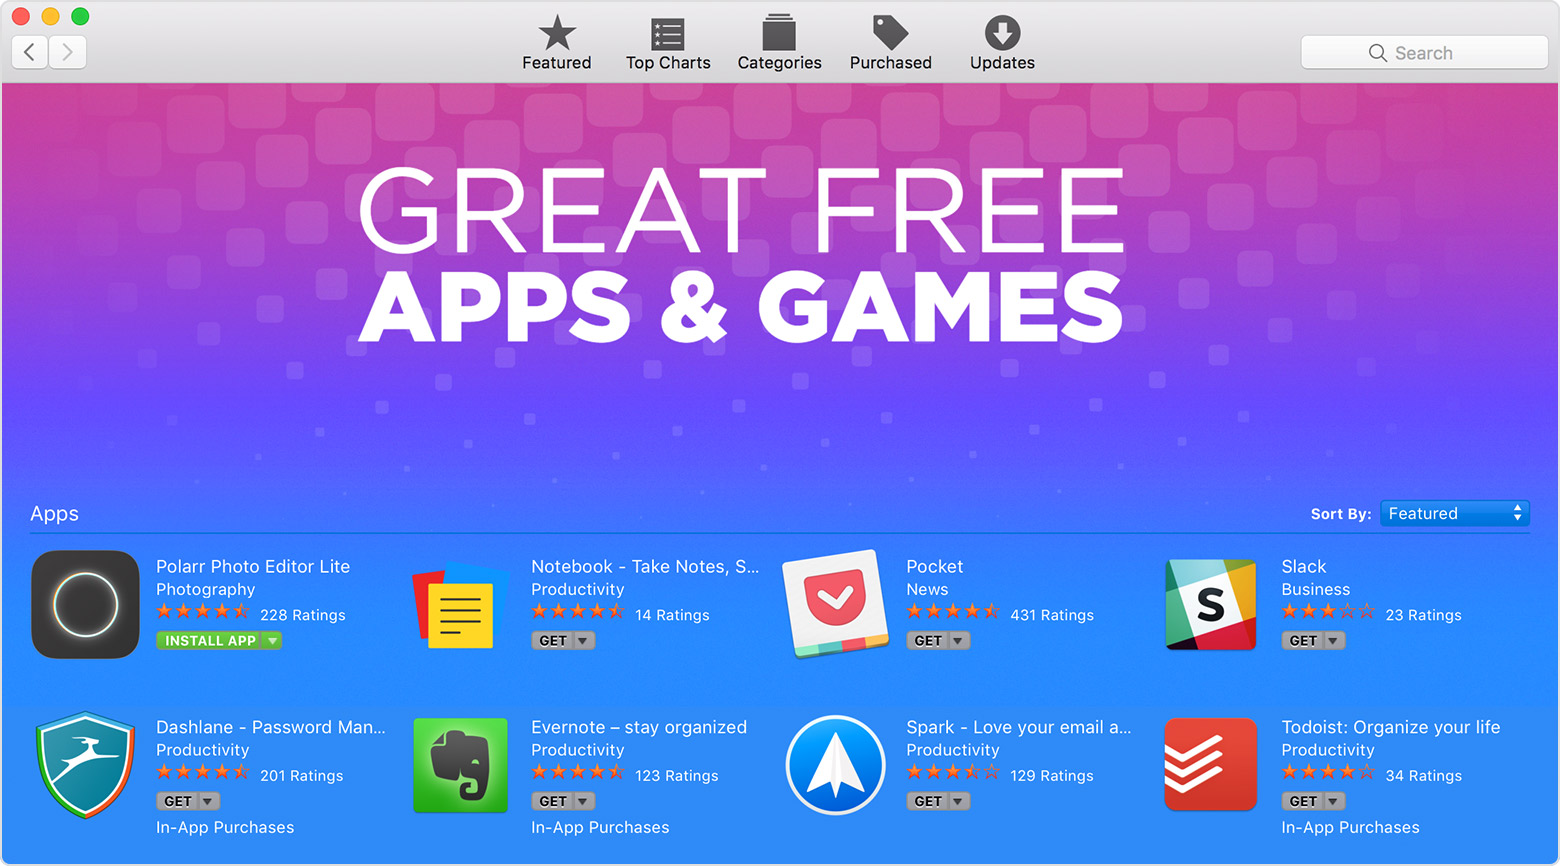 Free Apps and Games section of the App Store on Mac